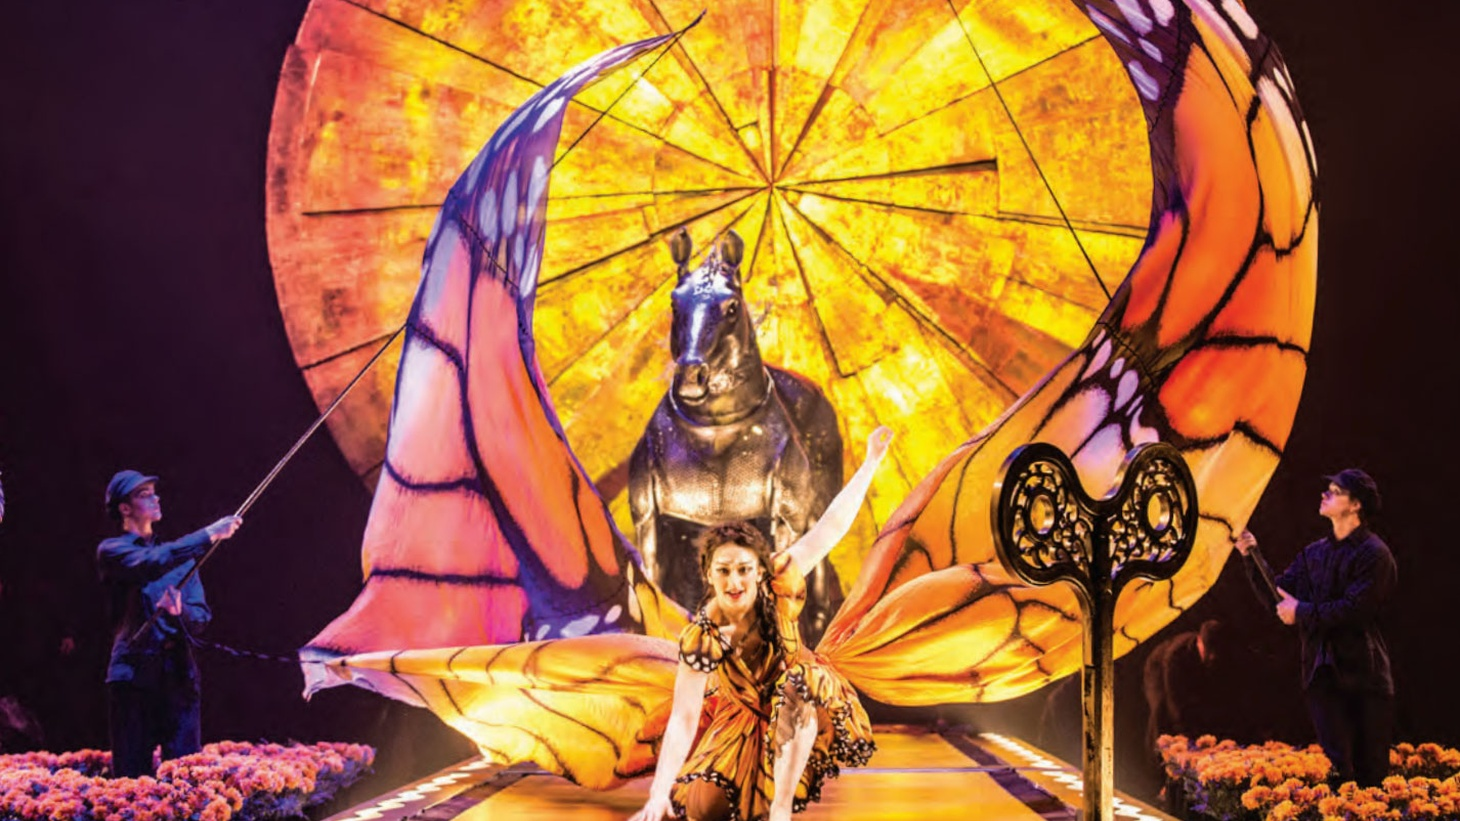 If you're looking for some theatrical spectacle for the whole family over the holidays, my pick is Cirque Du Soleil's latest Luzia.